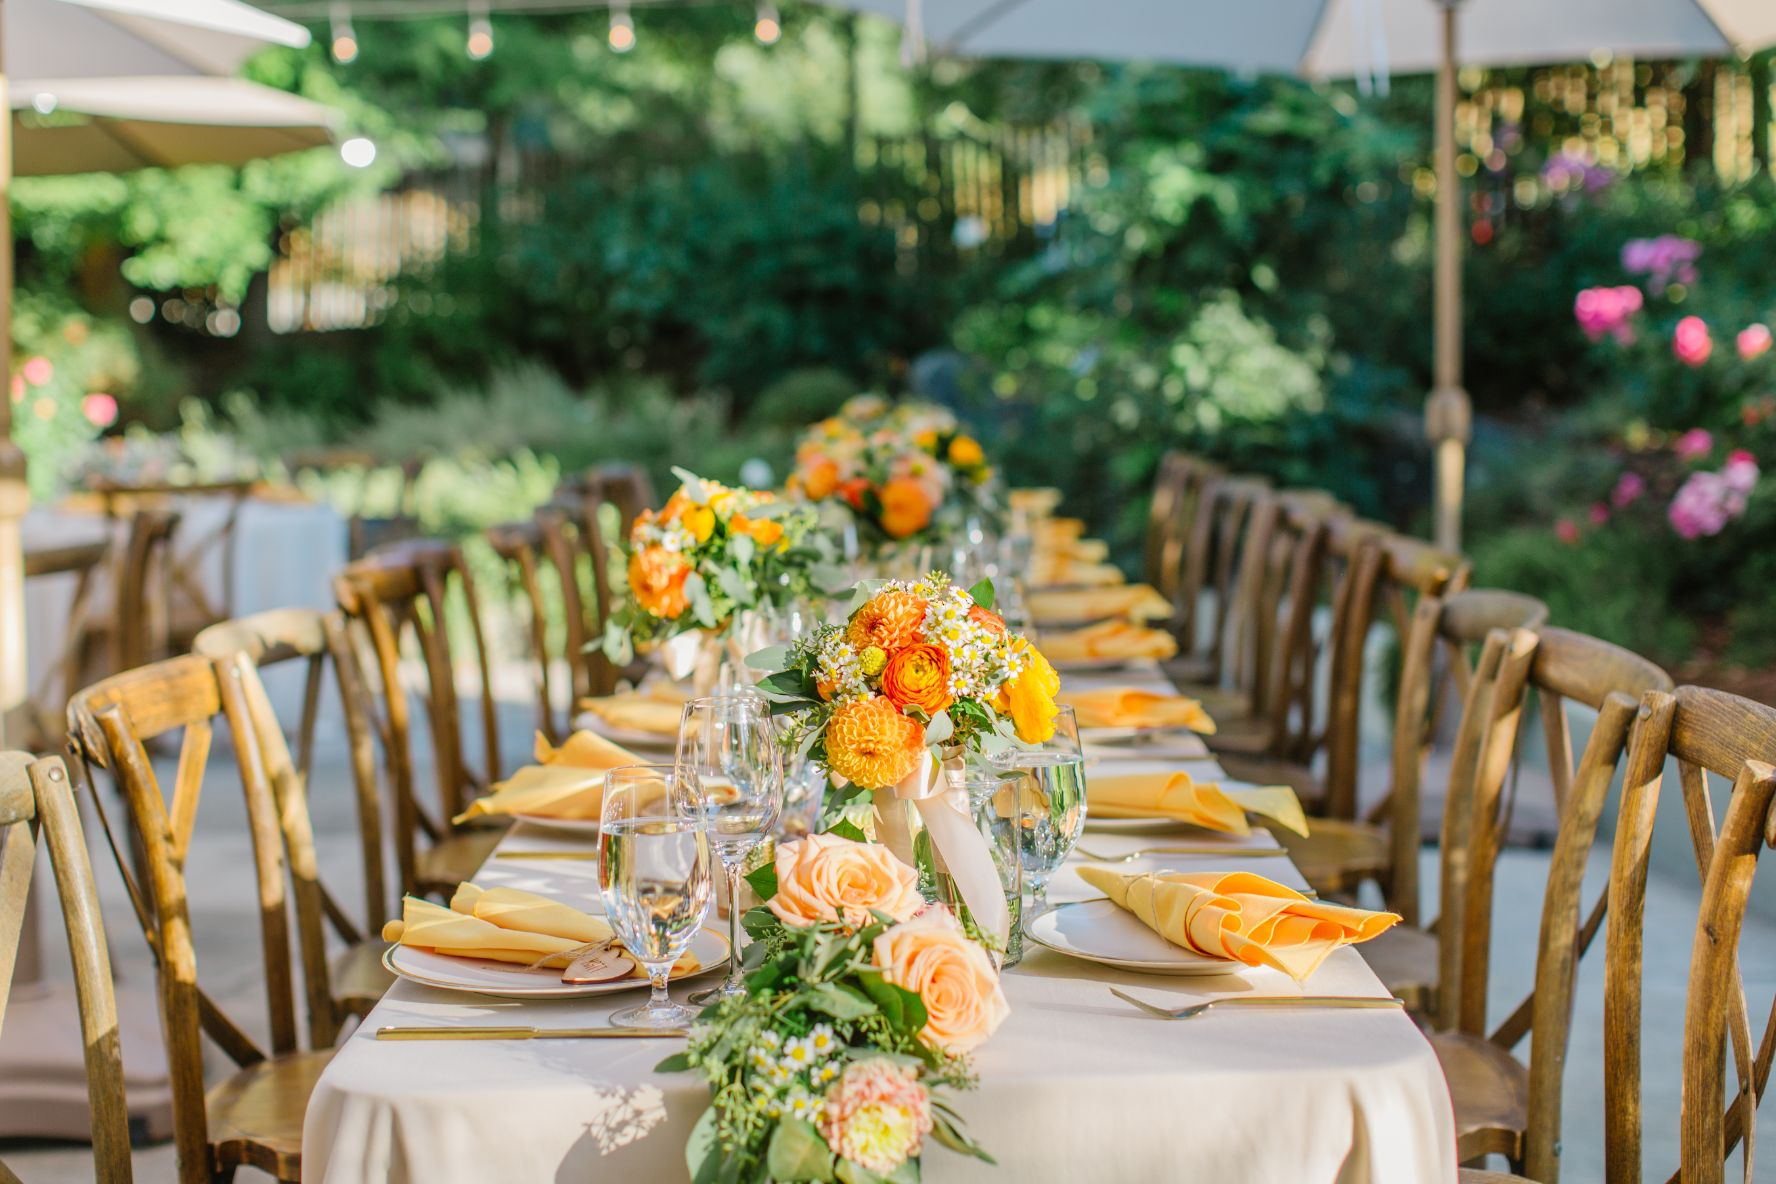 30 dining seating rustic mountain house estate weddingi venues northern california